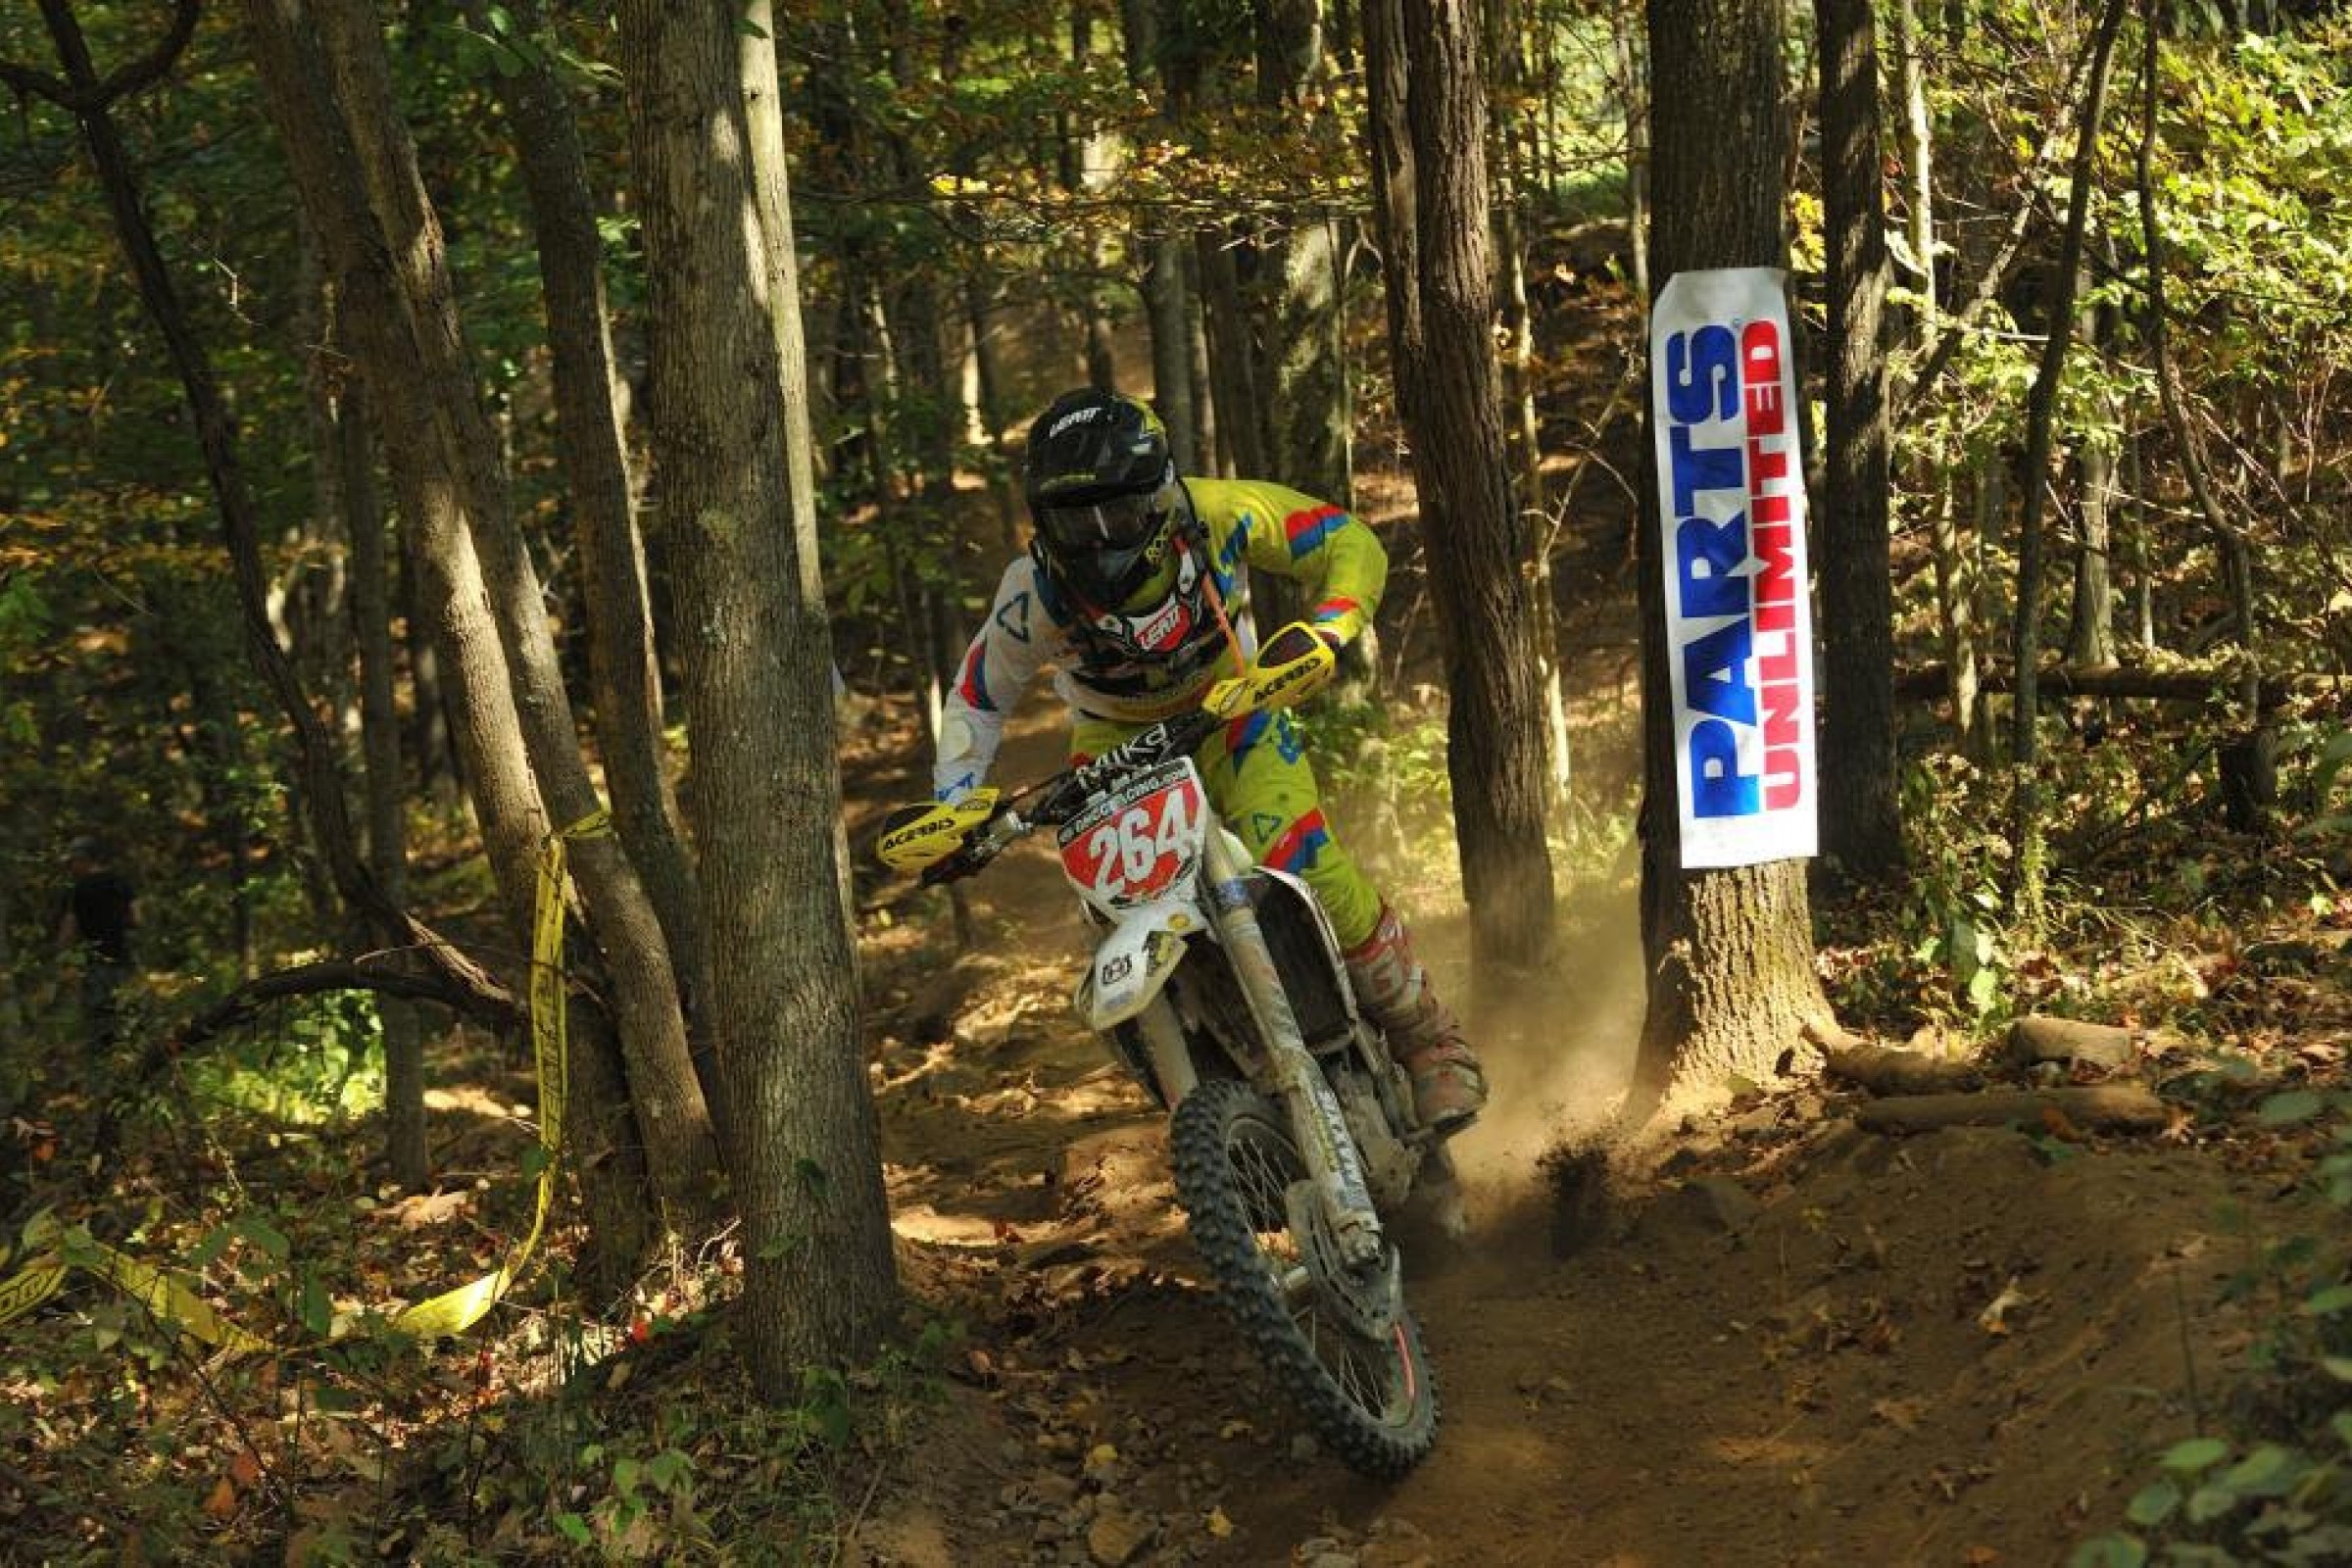 Ryan Sipes Wins First Career GNCC at Mountaineer Run